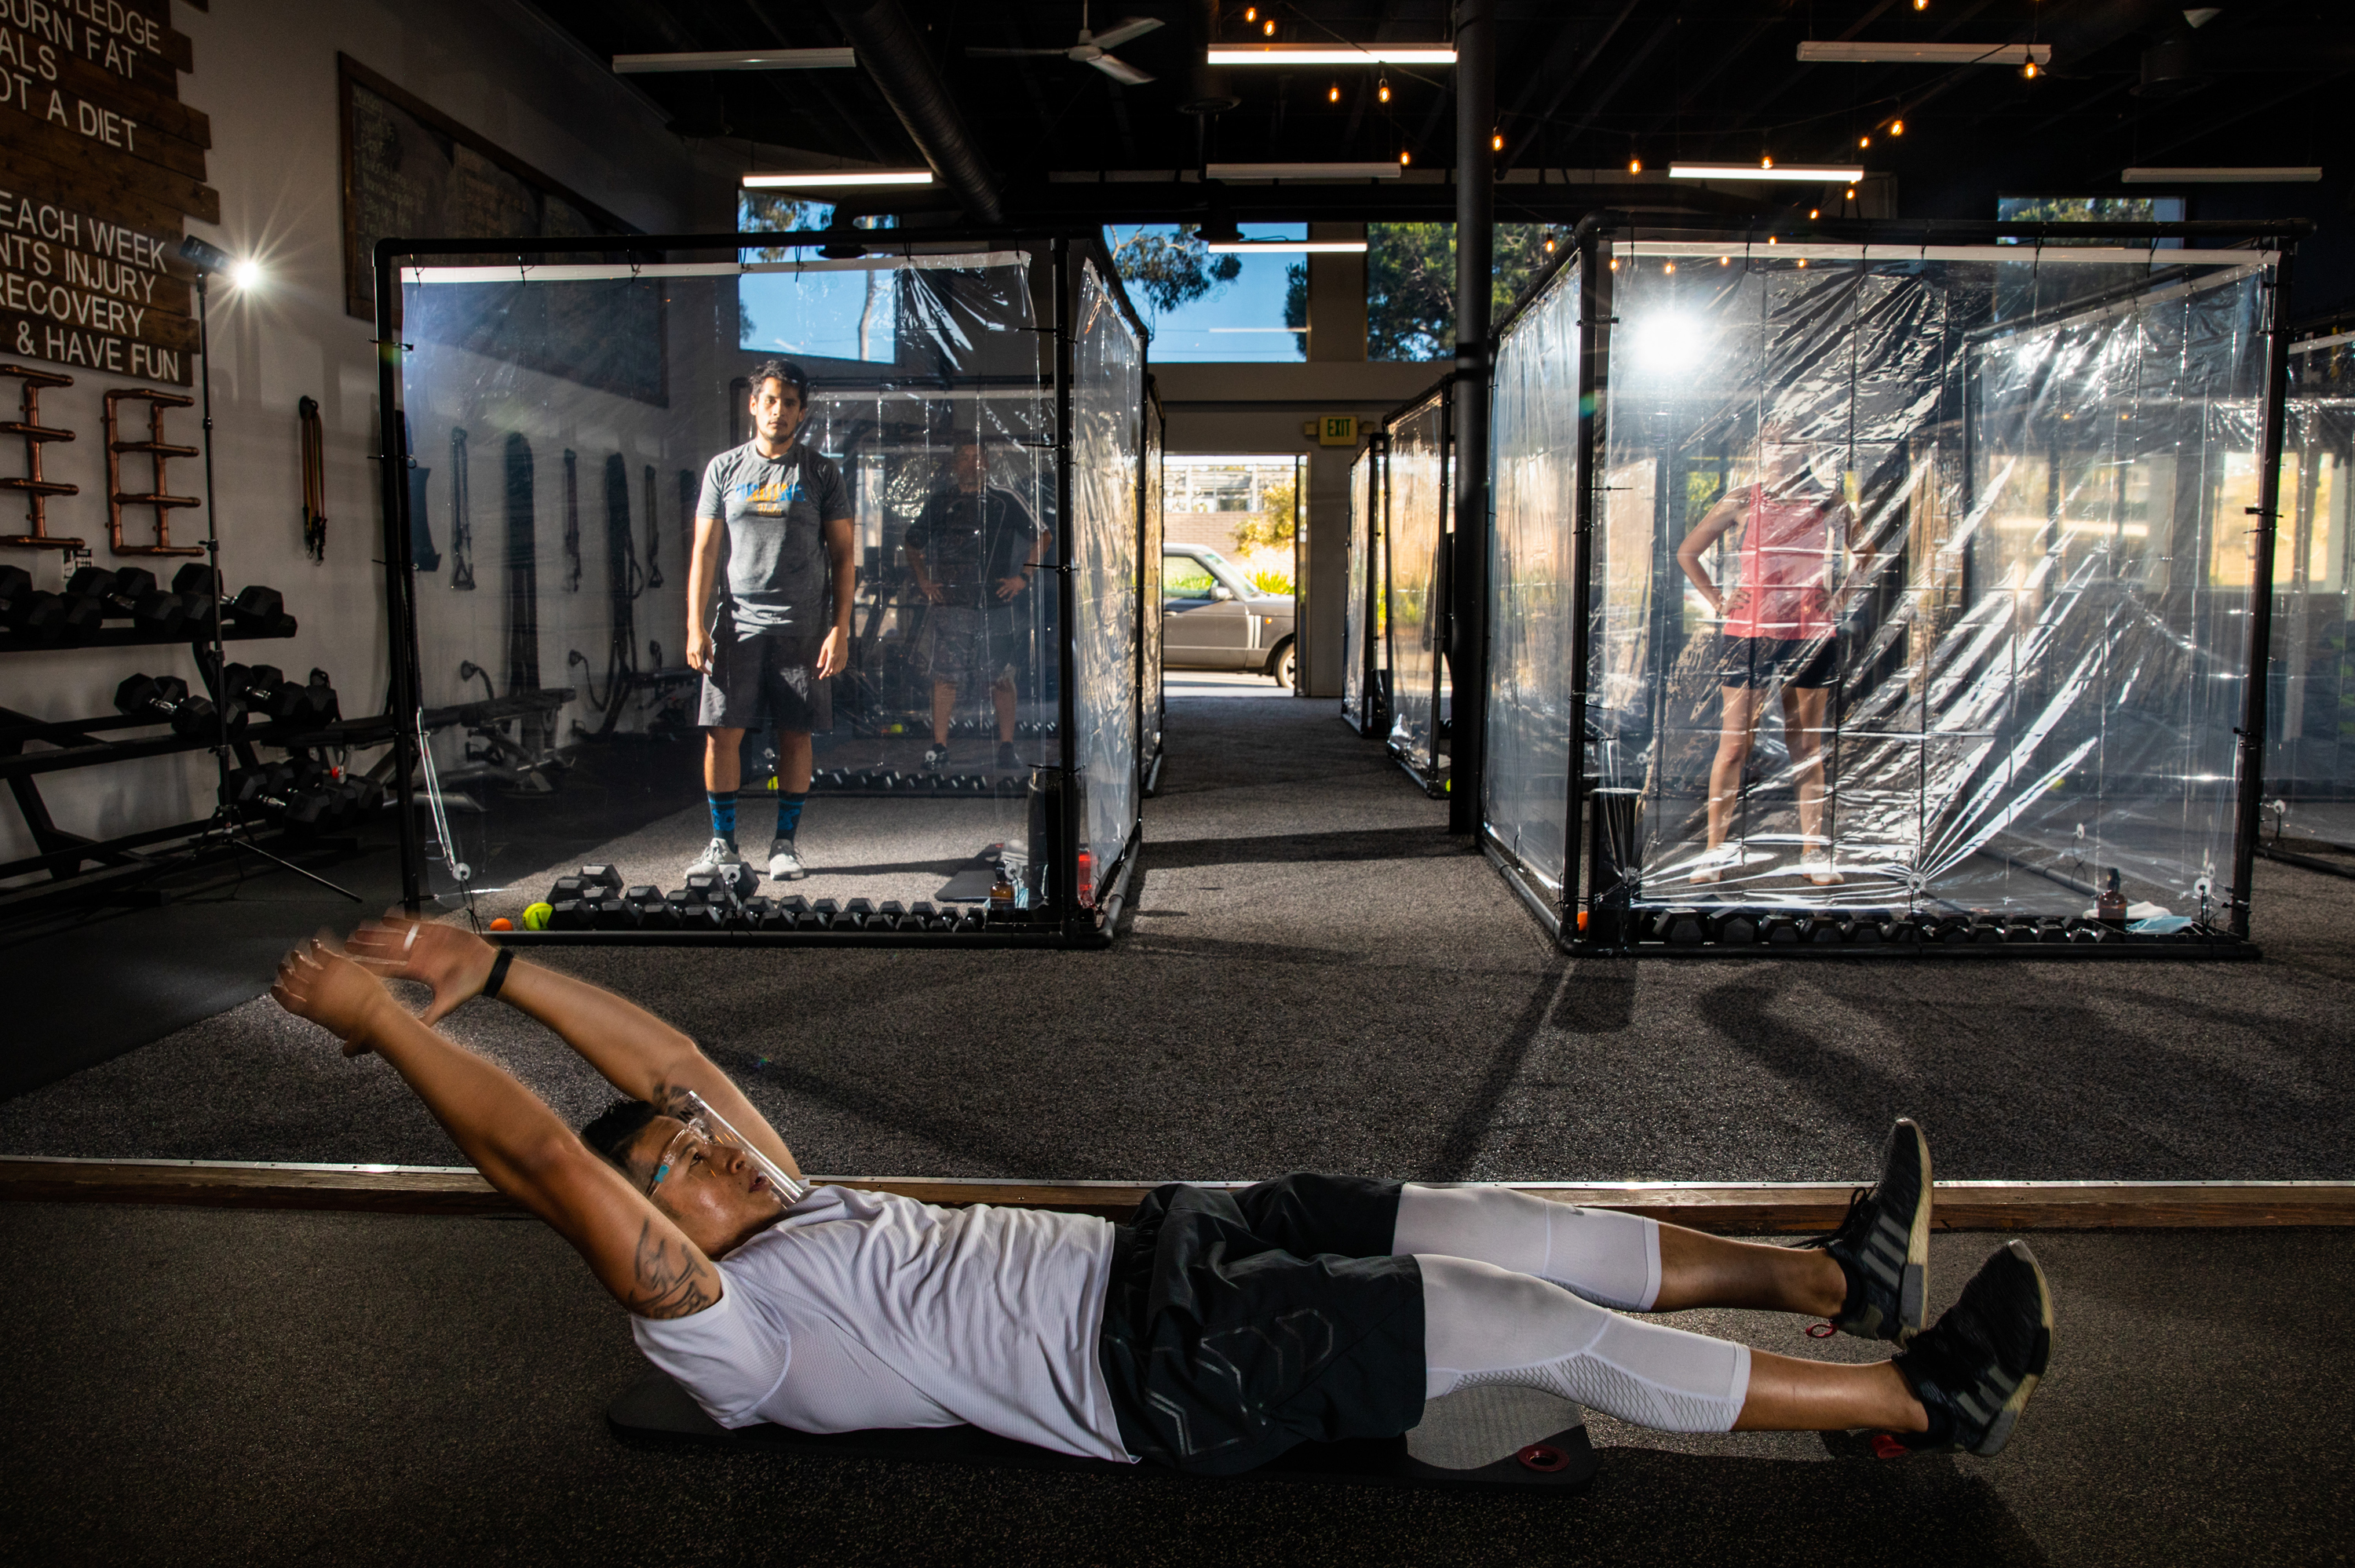 Are Gyms Safe Right Now What To Know About Covid 19 Risk While Working Out Shots Health News Npr